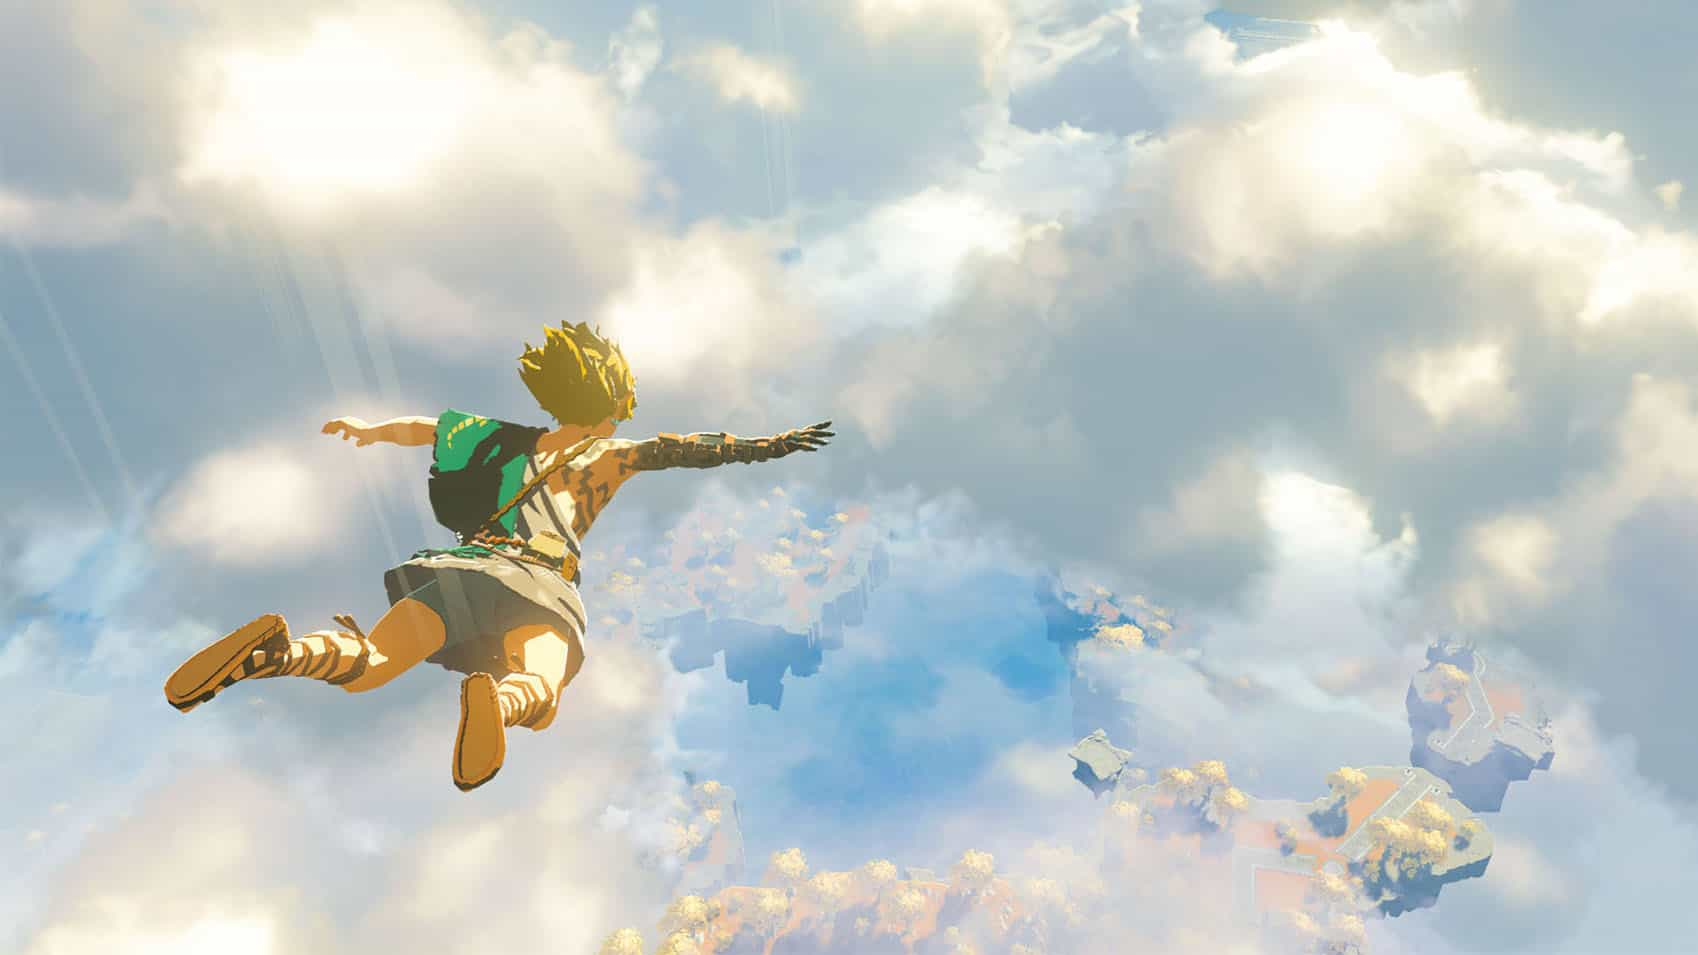 upcoming switch games breath of the wild 2